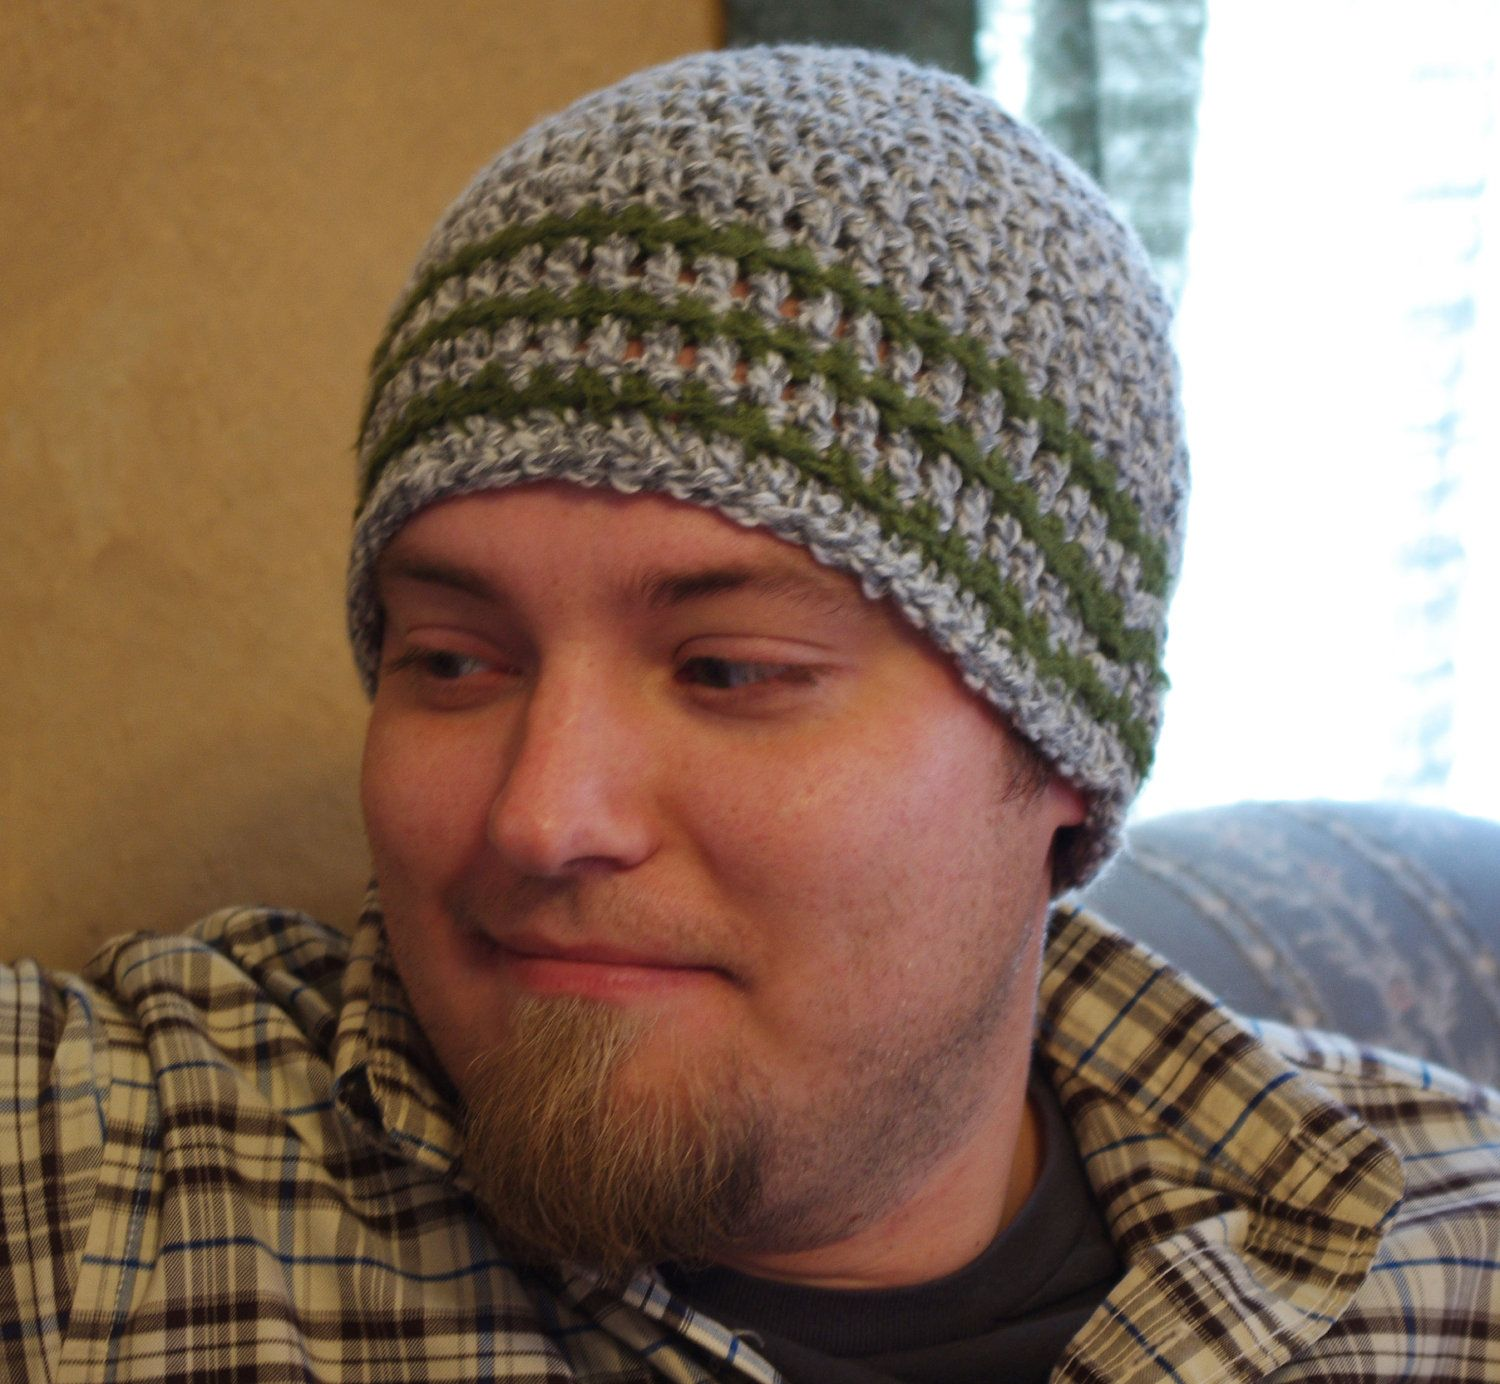 mens stylish croched hats | Crochet Beanie Hat Adult Size Winter Hat ...